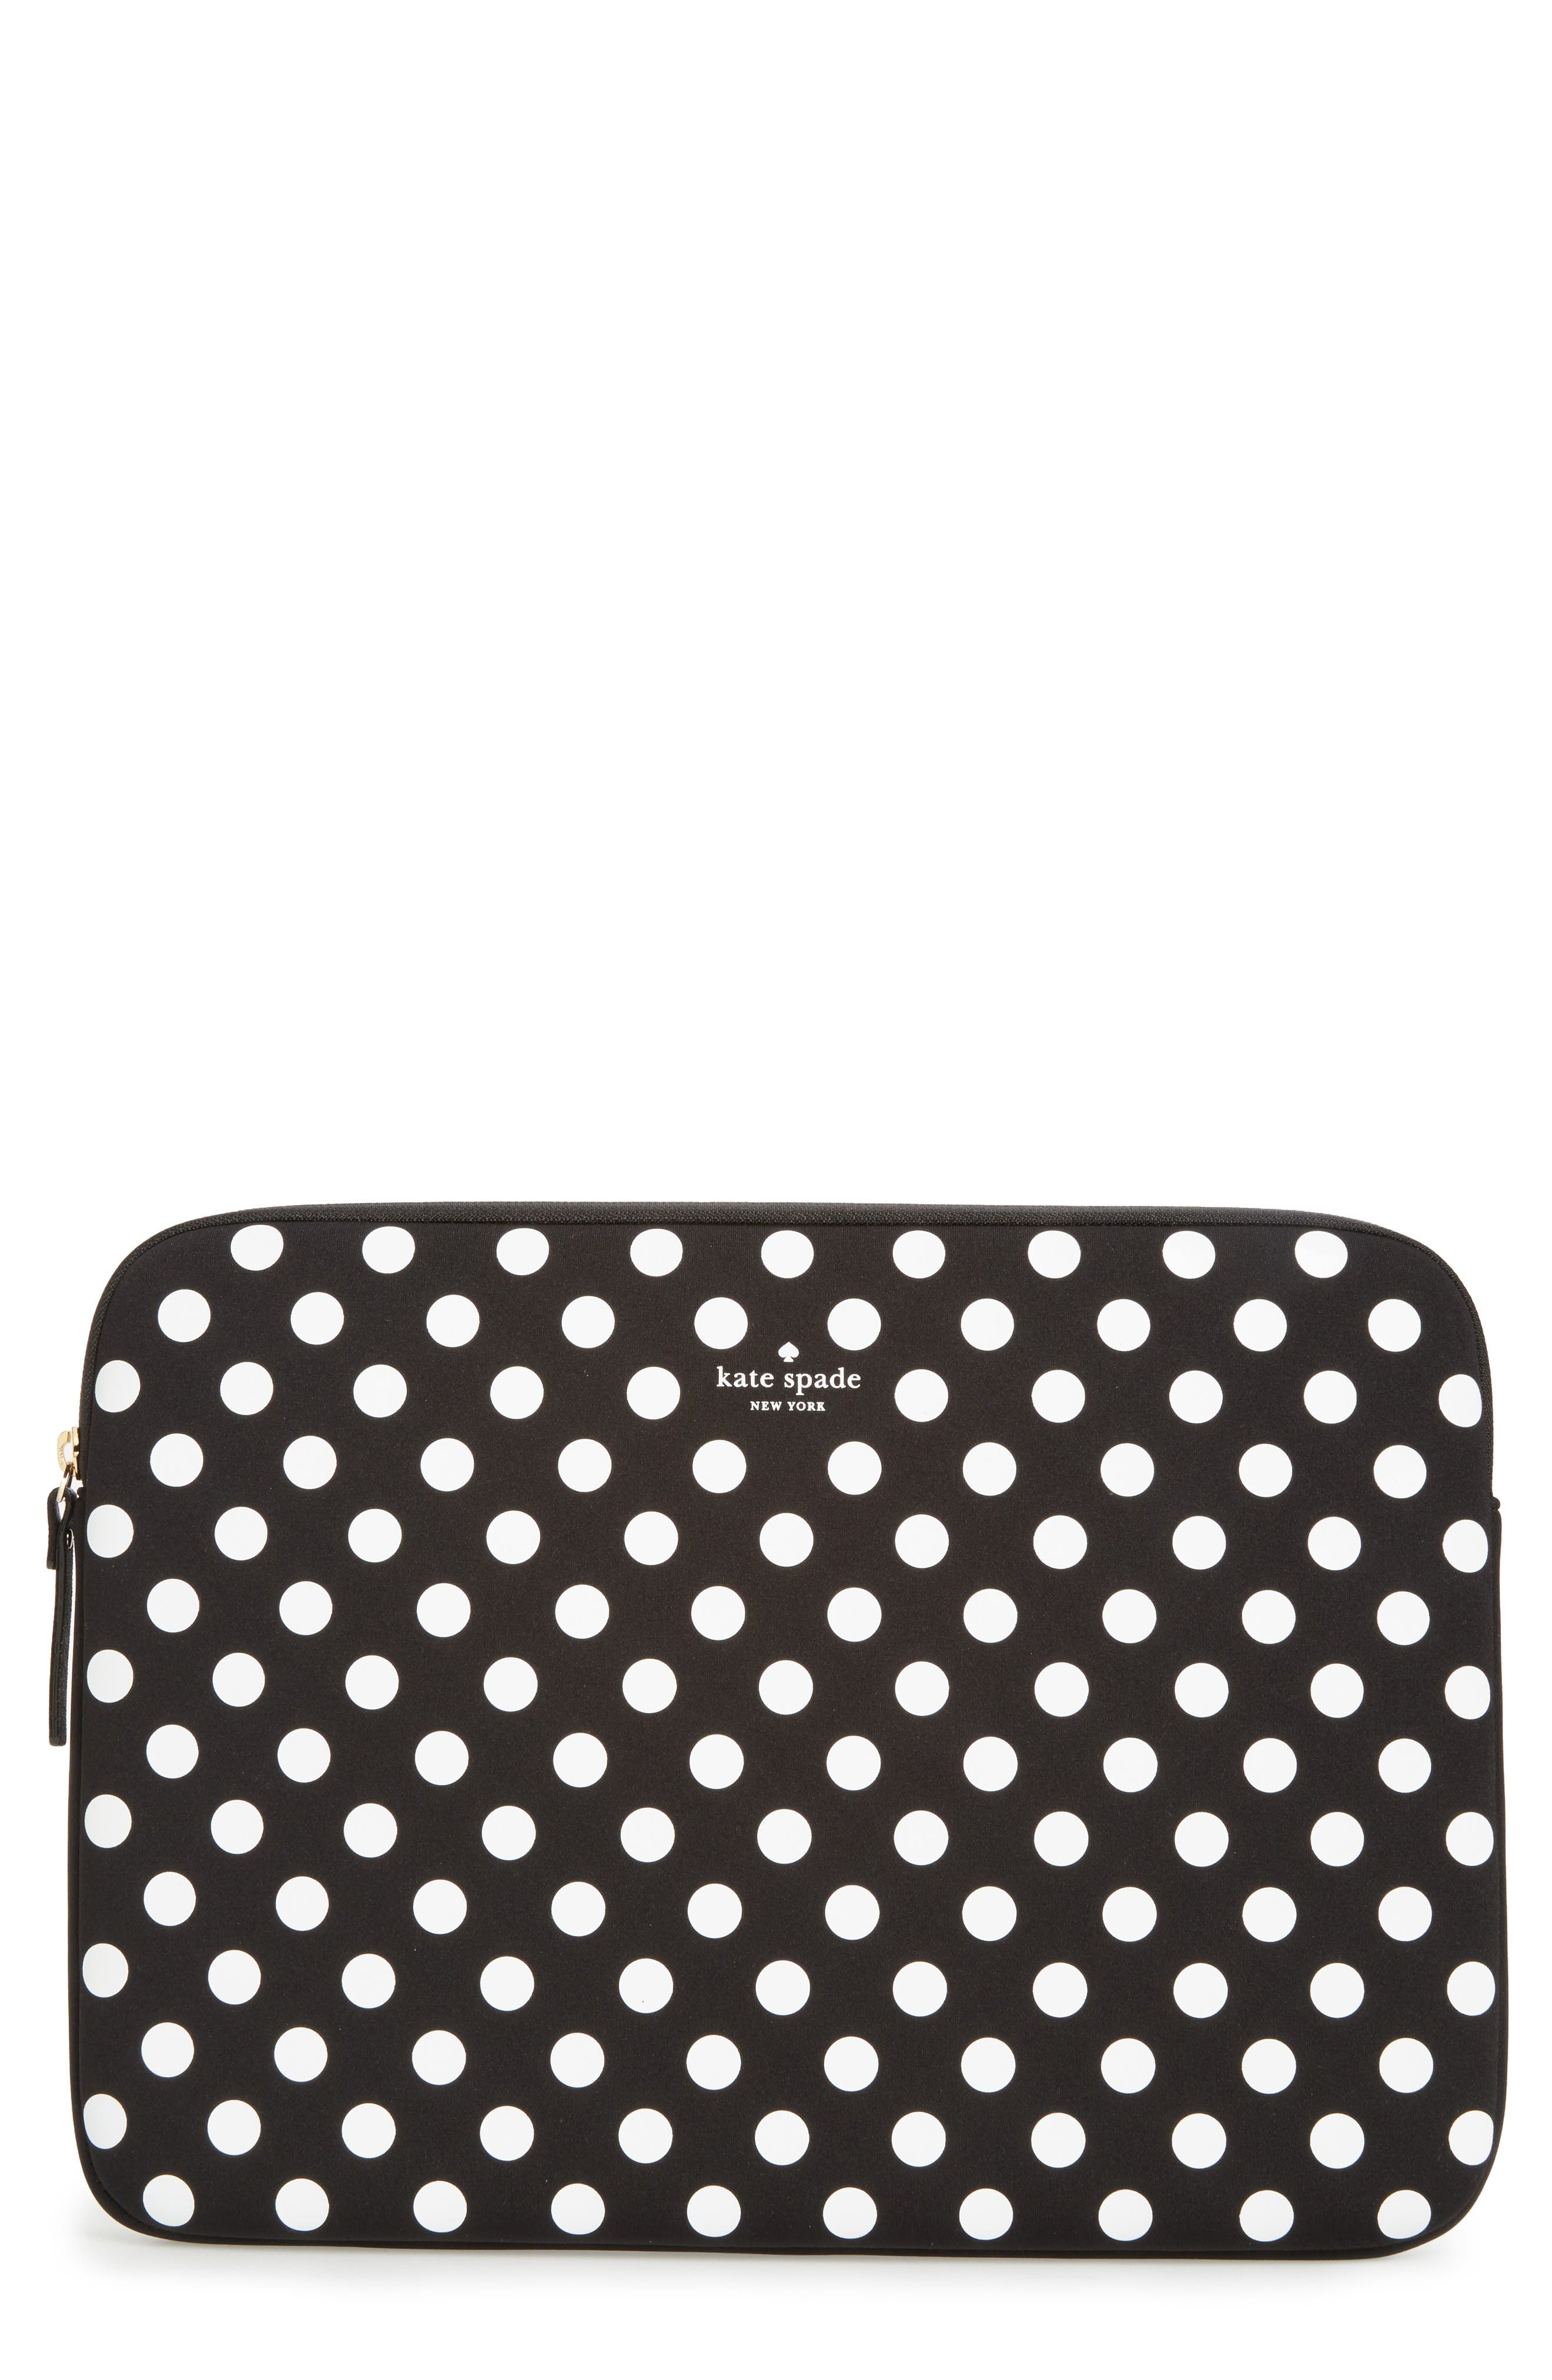 kate spade new york dot laptop sleeve (13 Inch)